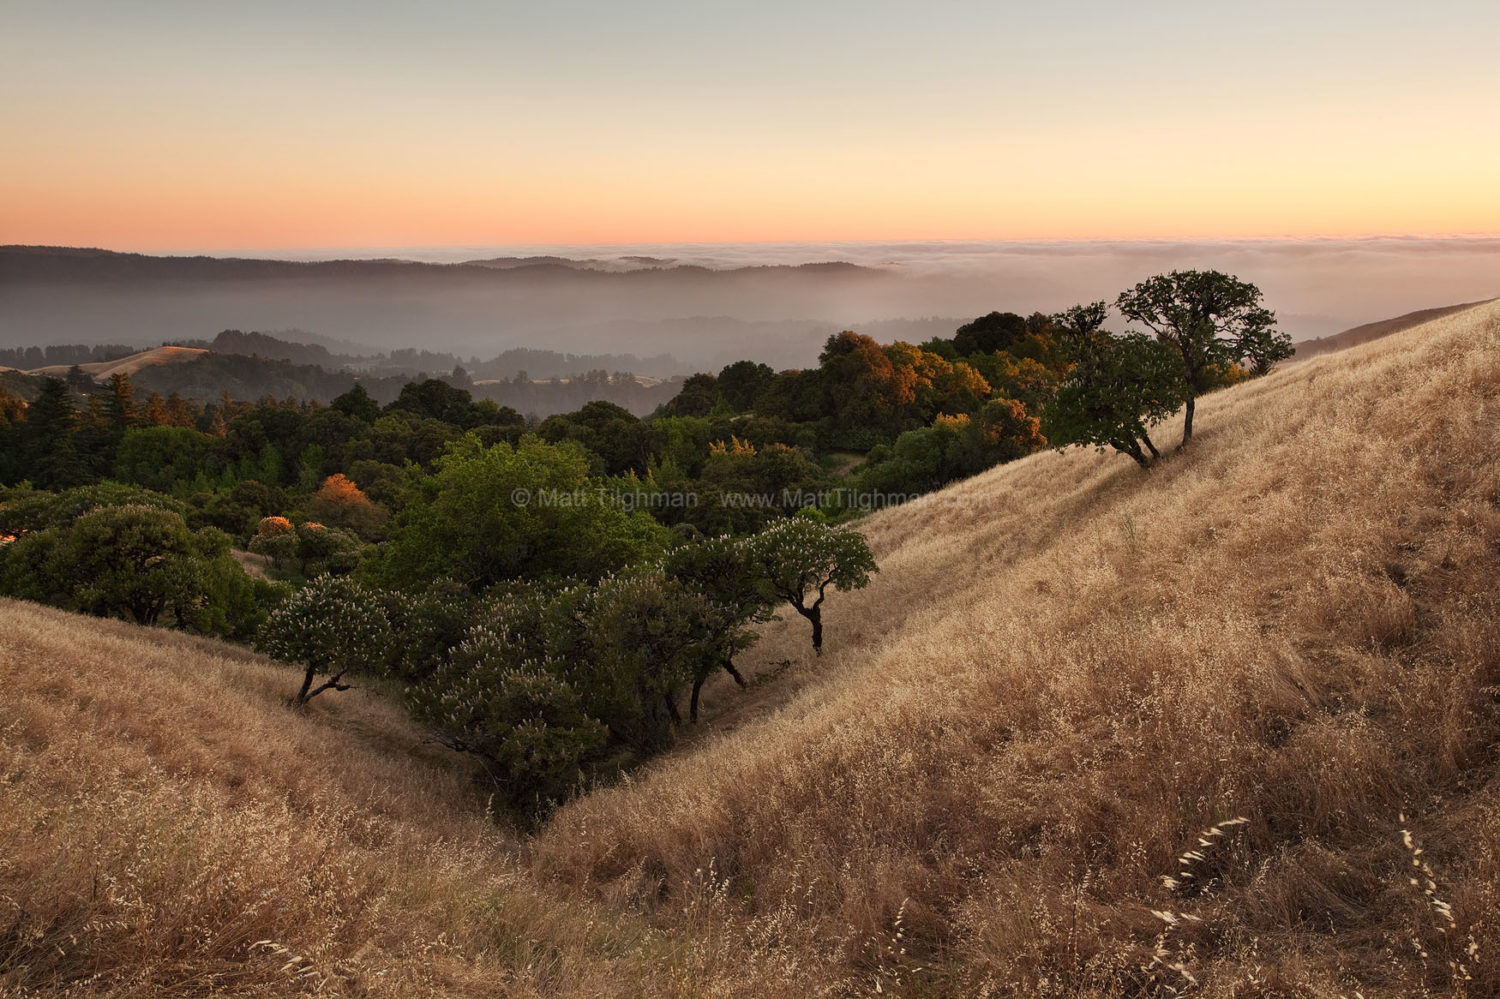 Fine art stock photograph from Russian Ridge in Summer. The season brings a sublime peace to the Santa Cruz Mountains of California, which this sunset showcases perfectly.